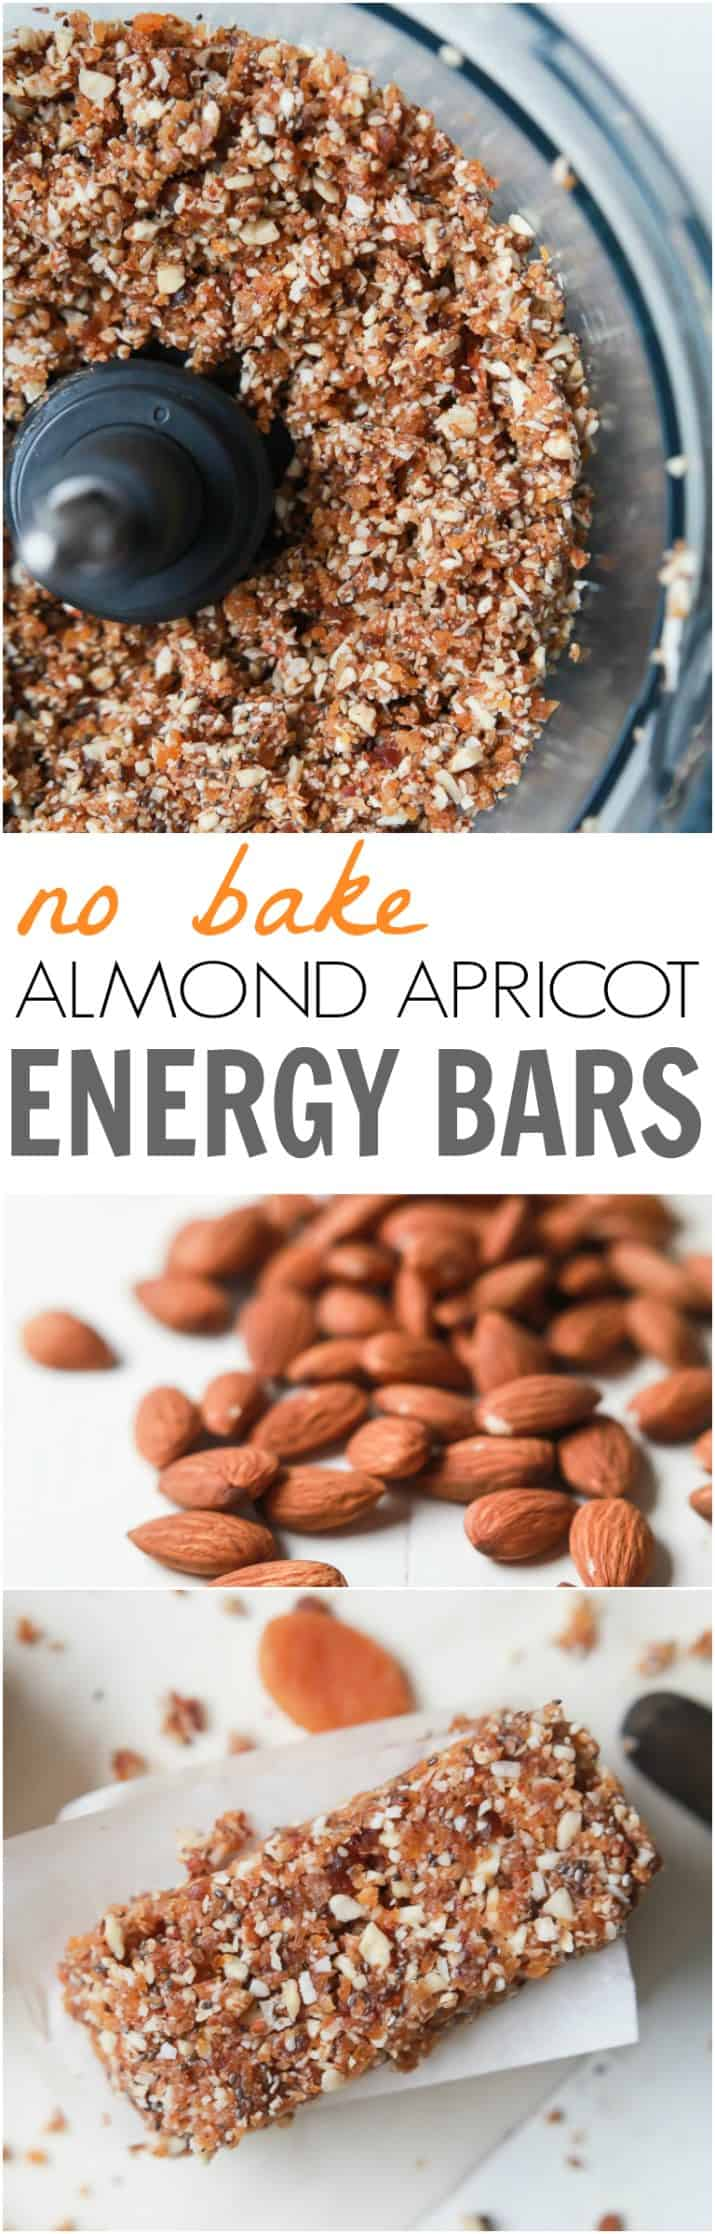 No Bake Apricot Almond Energy Bars - a great quick, easy and healthy snack option for a mid-day boost or post-workout snack. Takes 5 minutes to make!   joyfulhealthyeats.com #glutenfree #ad